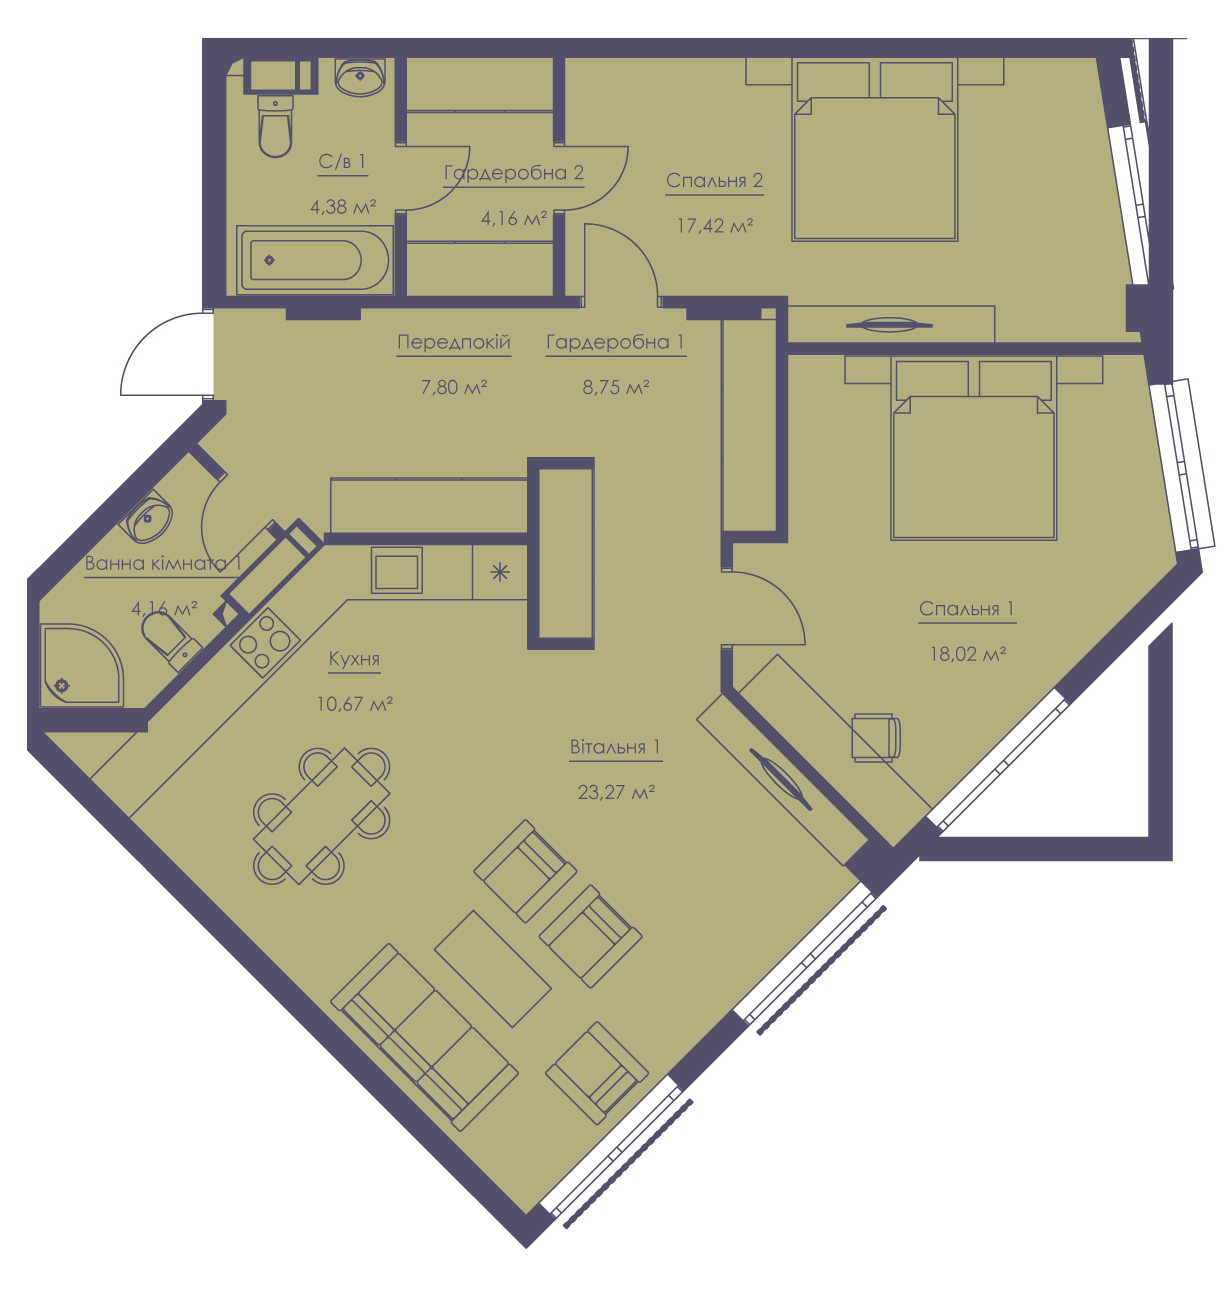 Apartment layout KV_48_3a_1_1_12-1